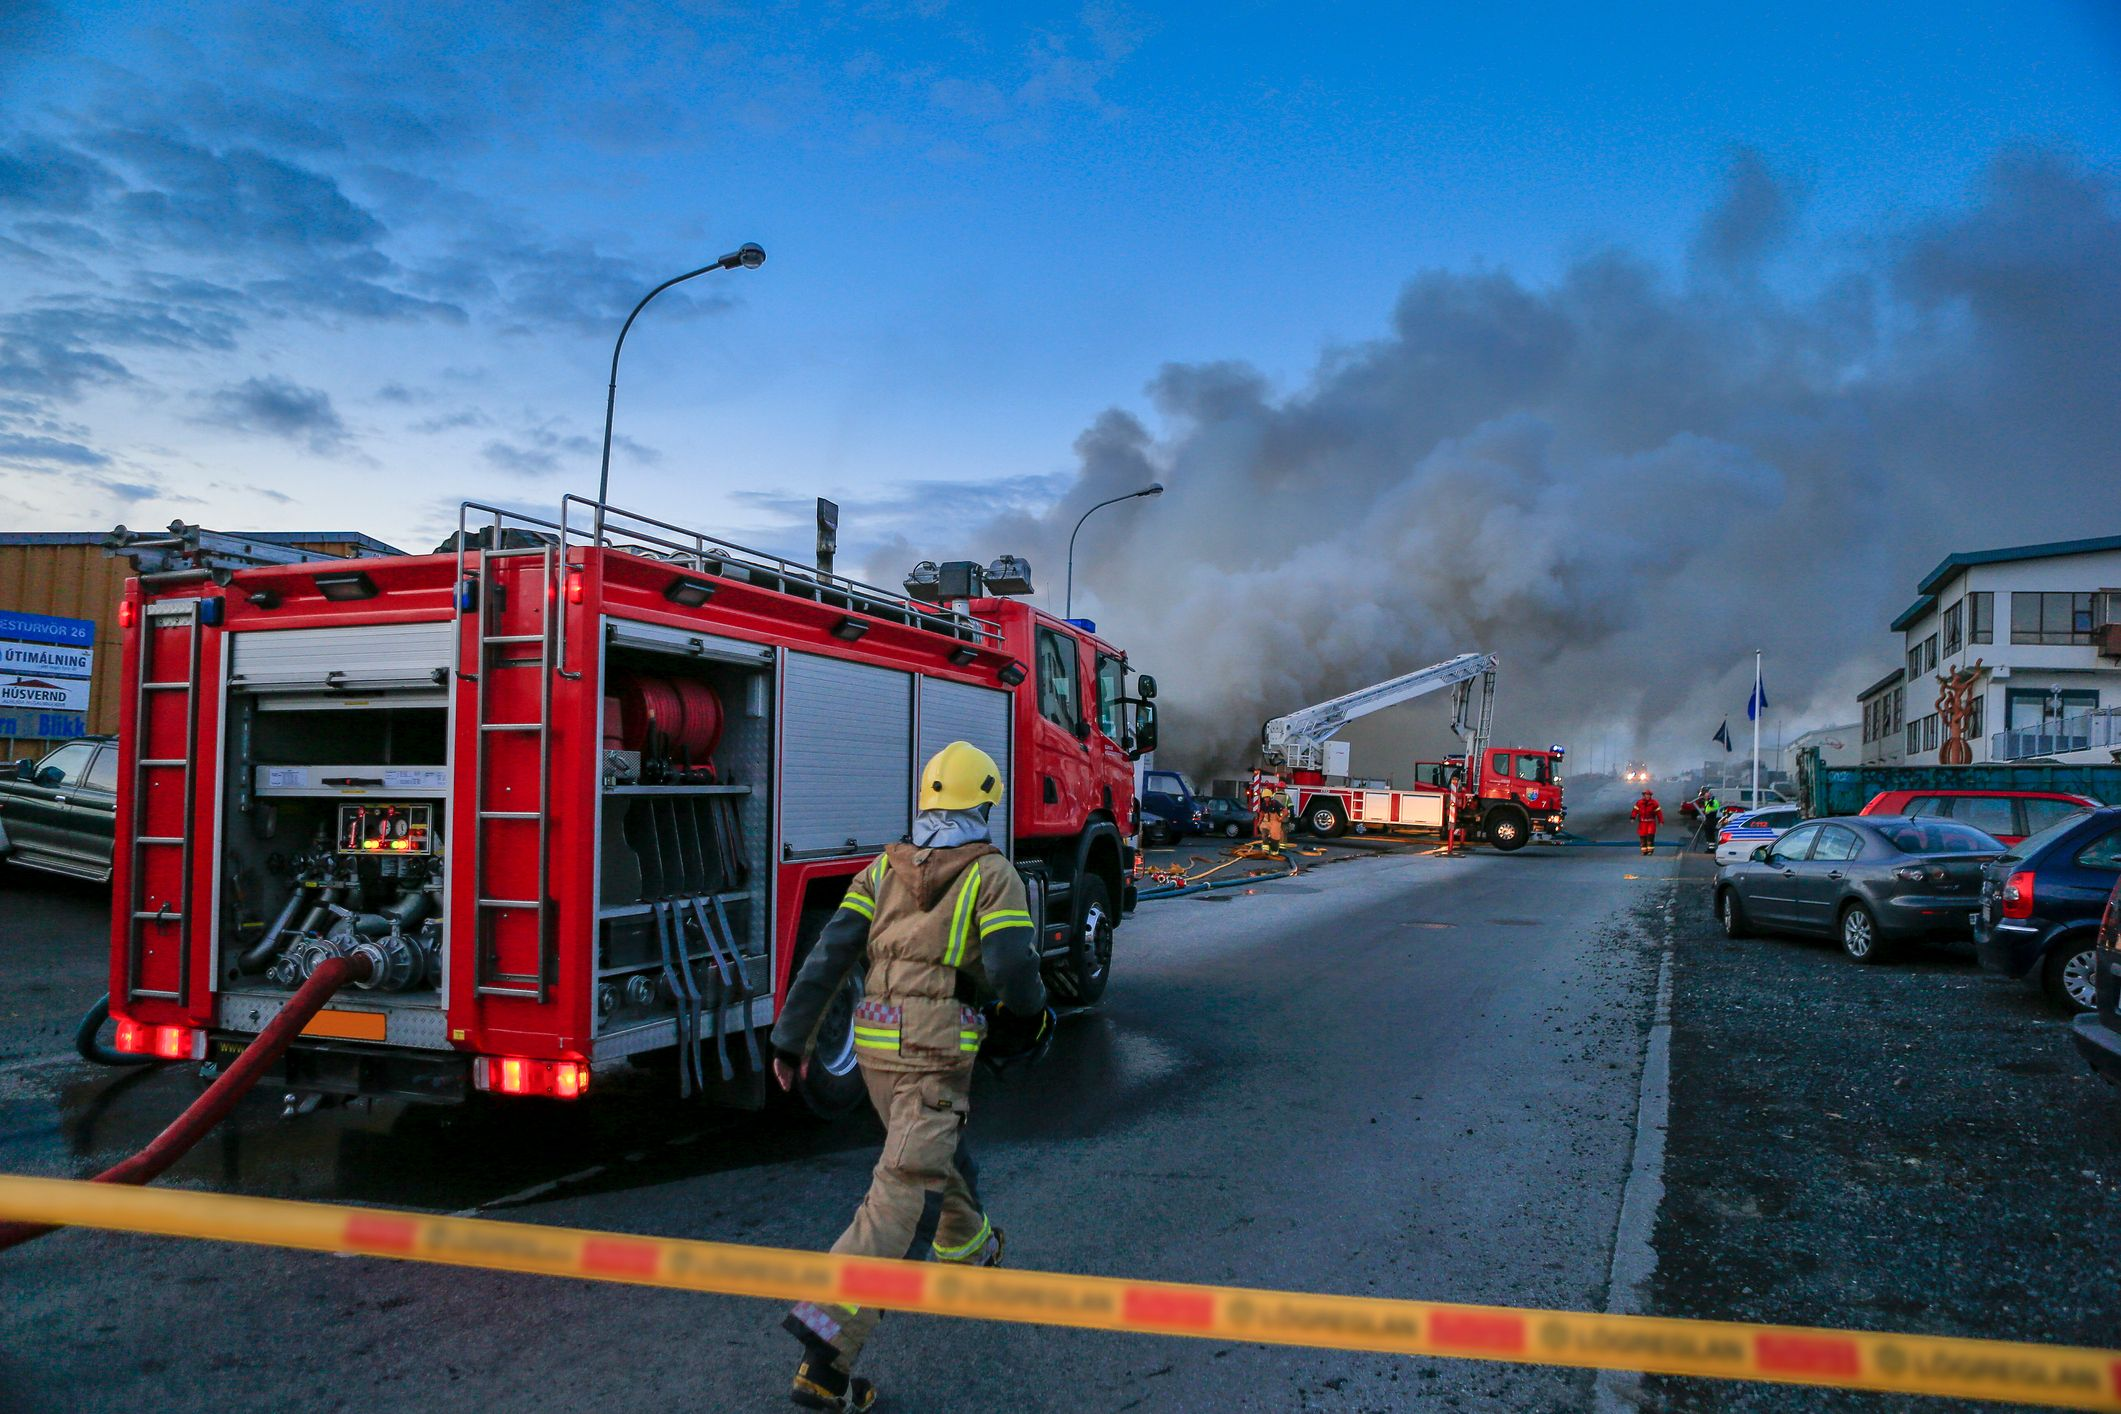 Firefighters respond to a fire emergency. | Source: Getty Images